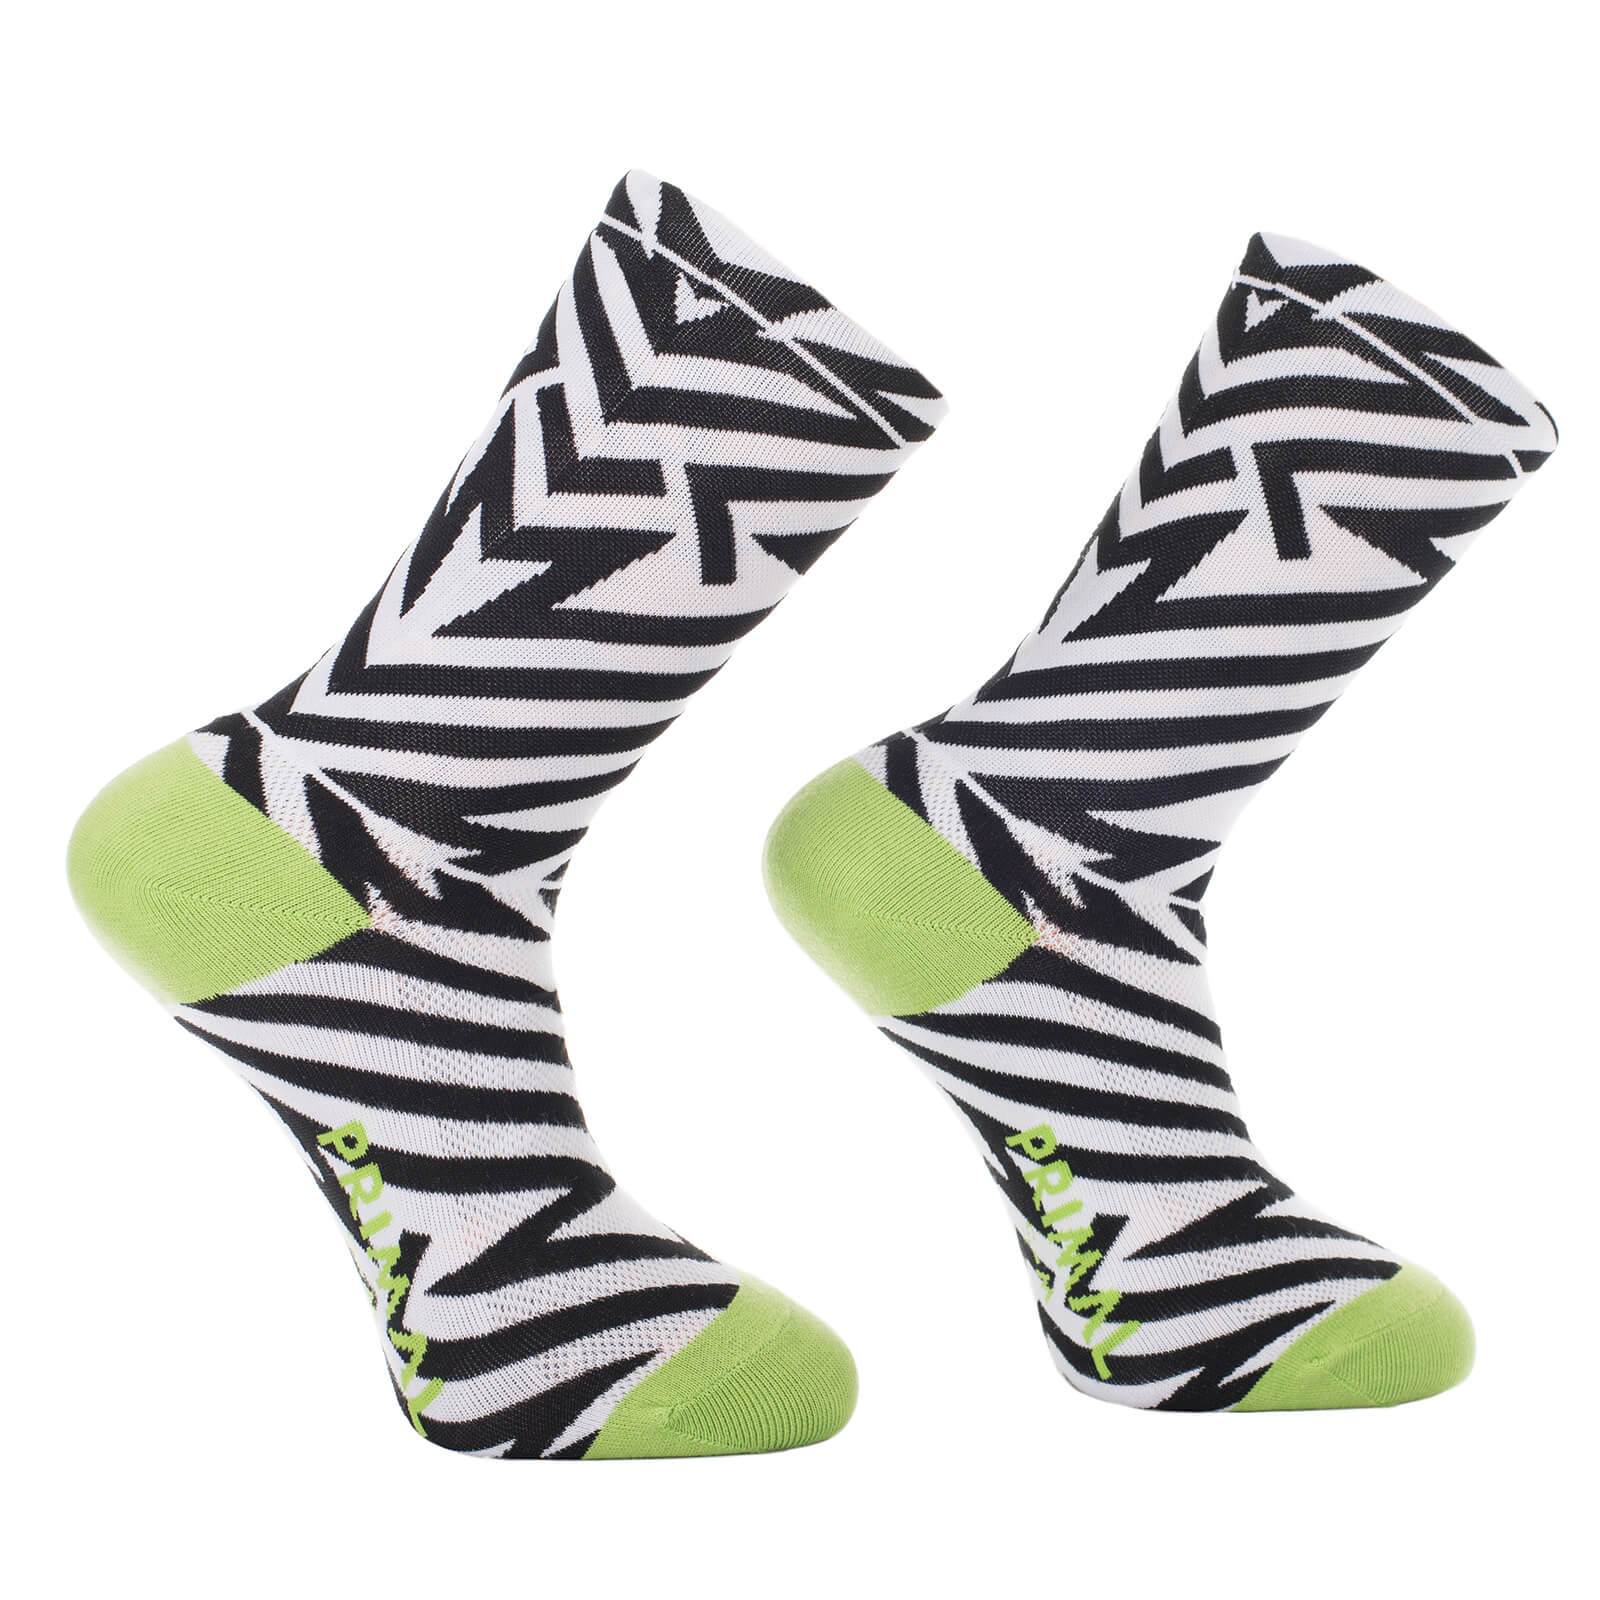 Primal Electric Shock Socks - Black/White